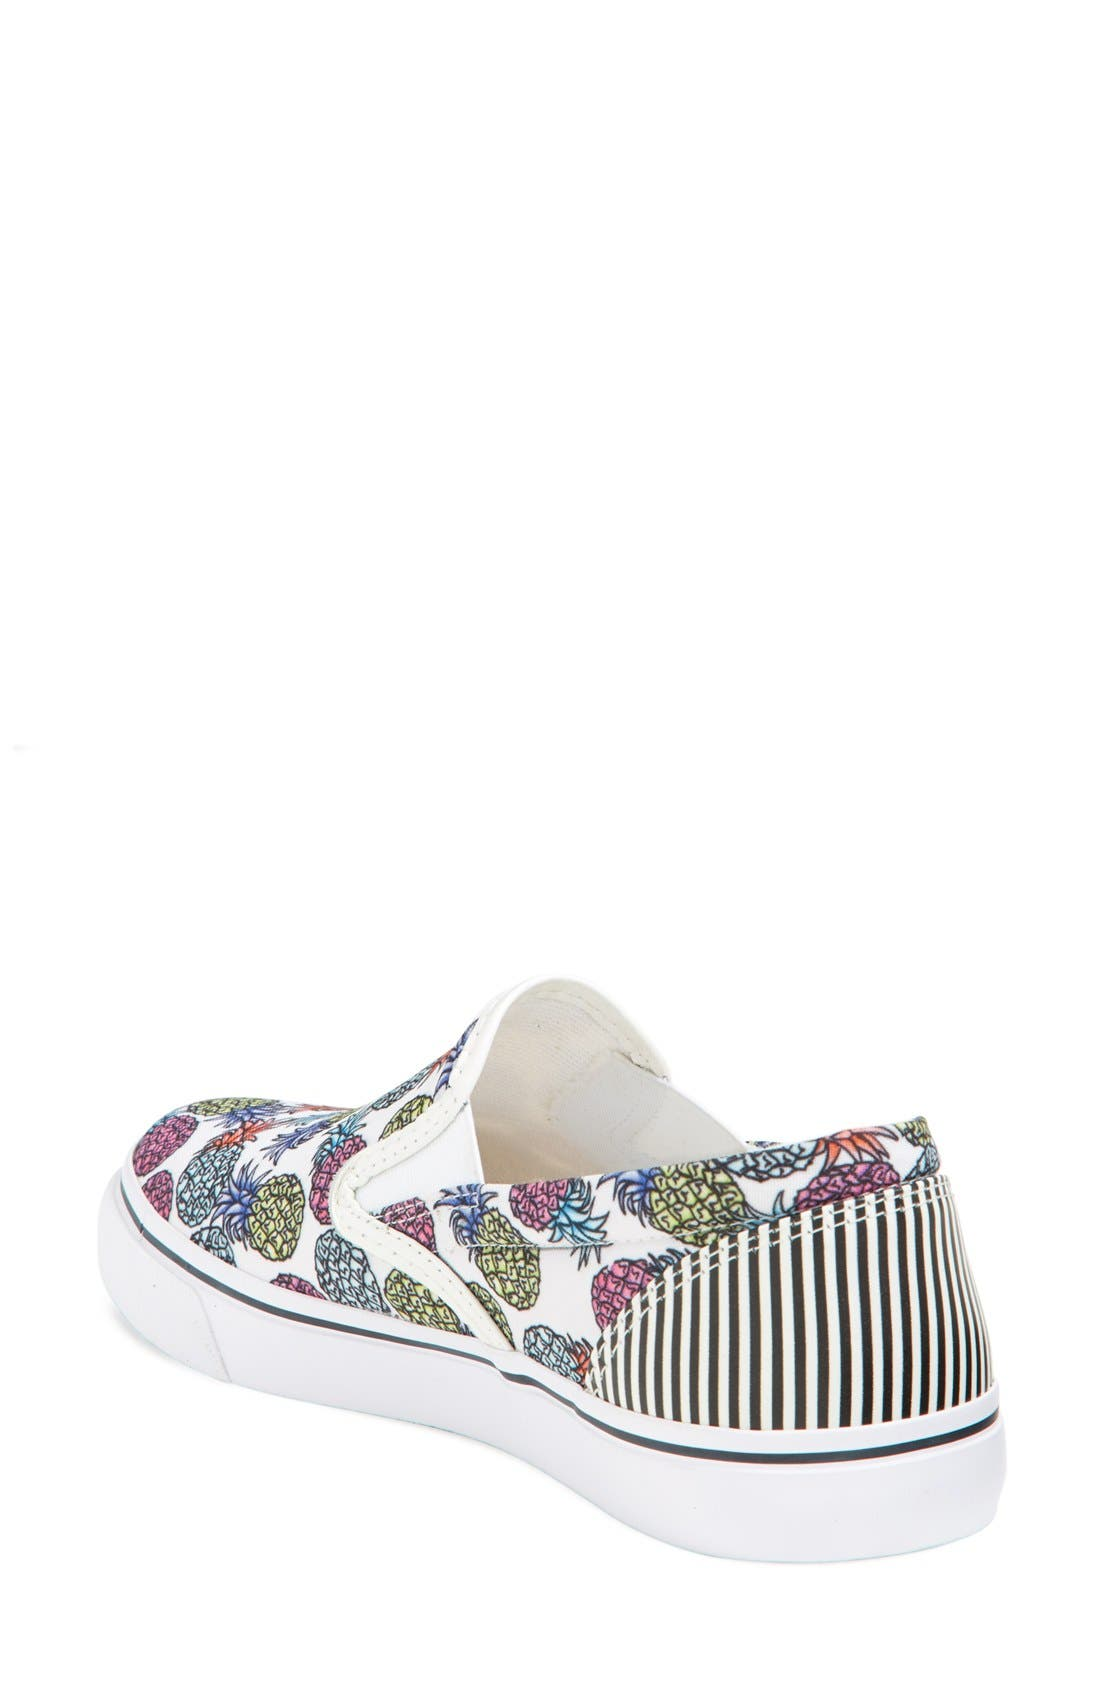 Alternate Image 2  - Sophia Webster 'Adele - Pineapple' Satin Slip-On Sneaker (Women)